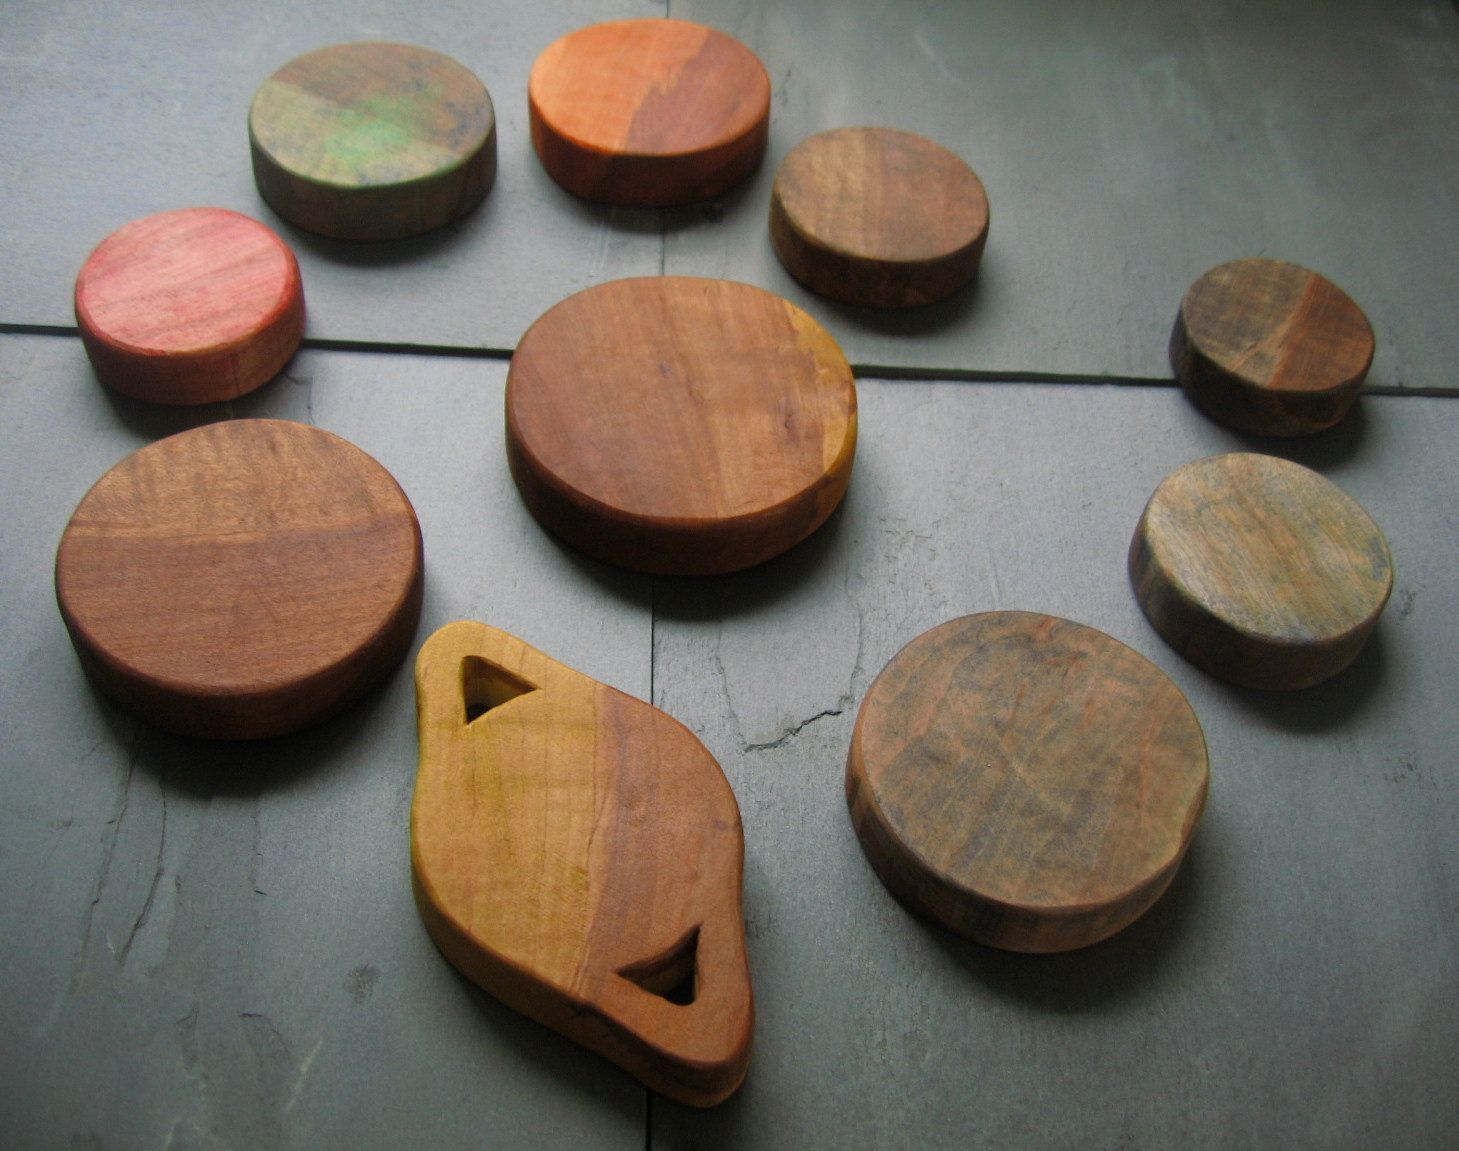 Maple, Organic, Non-Toxic, Wooden Coloured Solar System for Infants, Toddlers, or Older Kids  - From Janeville Woods